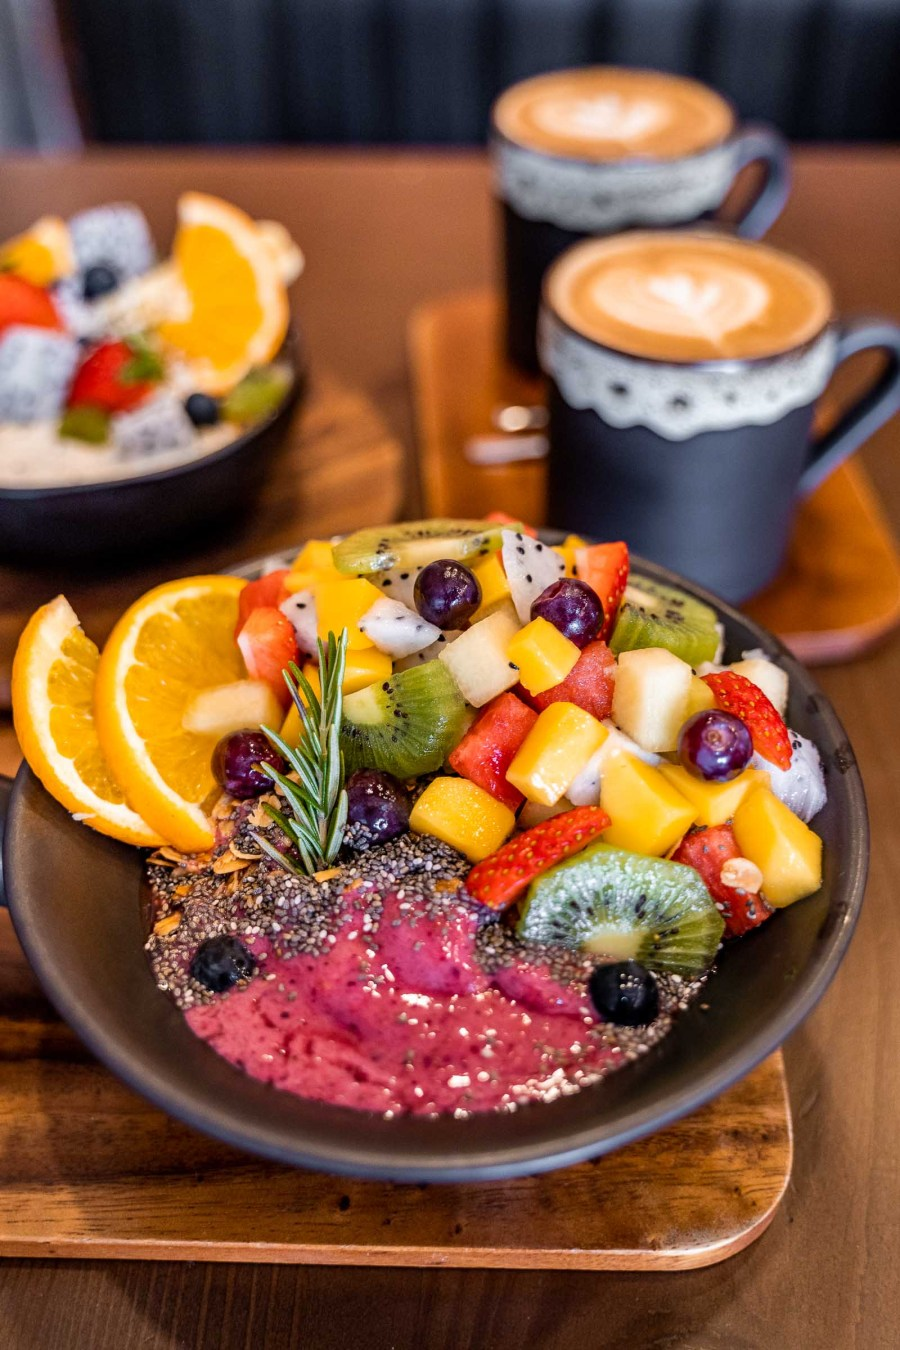 Smoothie bowl for breakfast at Interior at Ember Coffee & Eatery in Chiang Mai